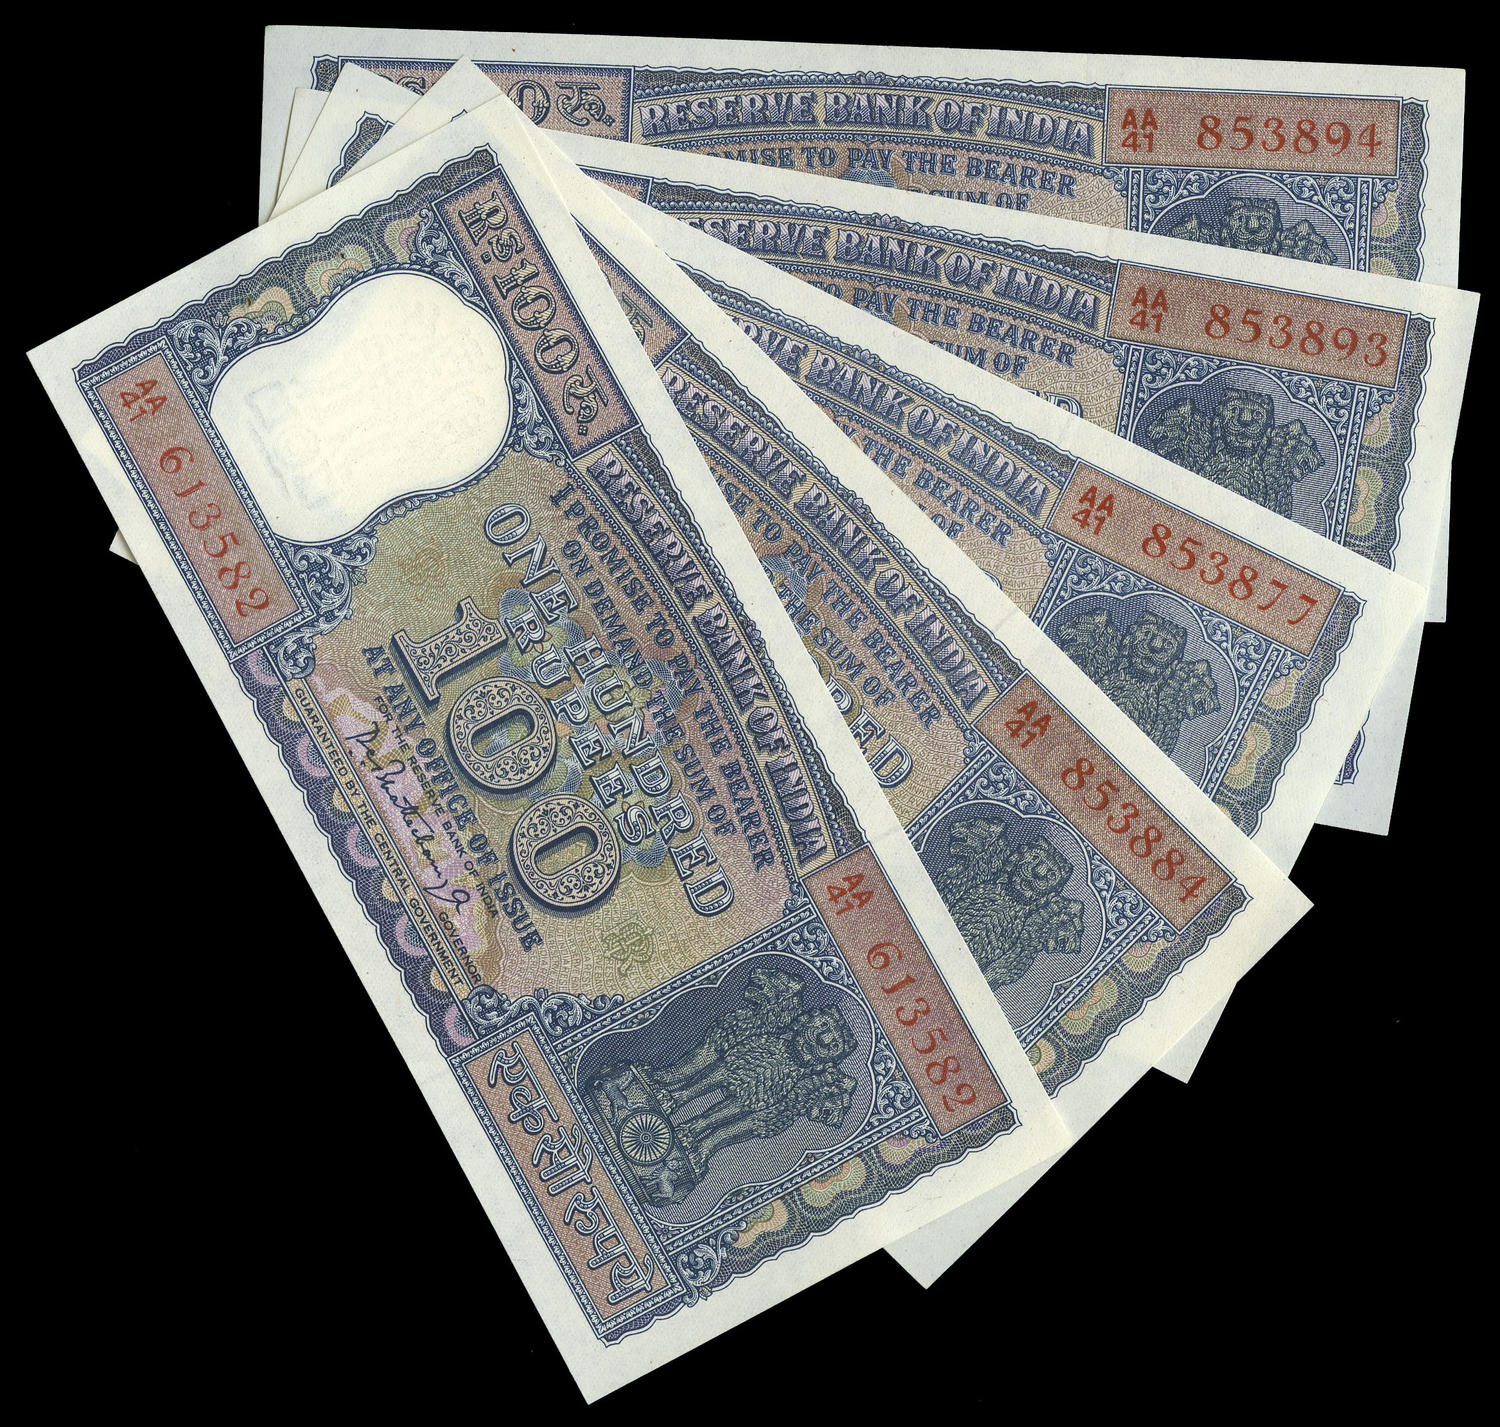 world paper money for sale The old paper money for sale on our website is in great condition and is value for money, considering the pricing you will never find a better opportunity to buy world banknotes online which are not only of such good condition, but are also not-so-expensive.